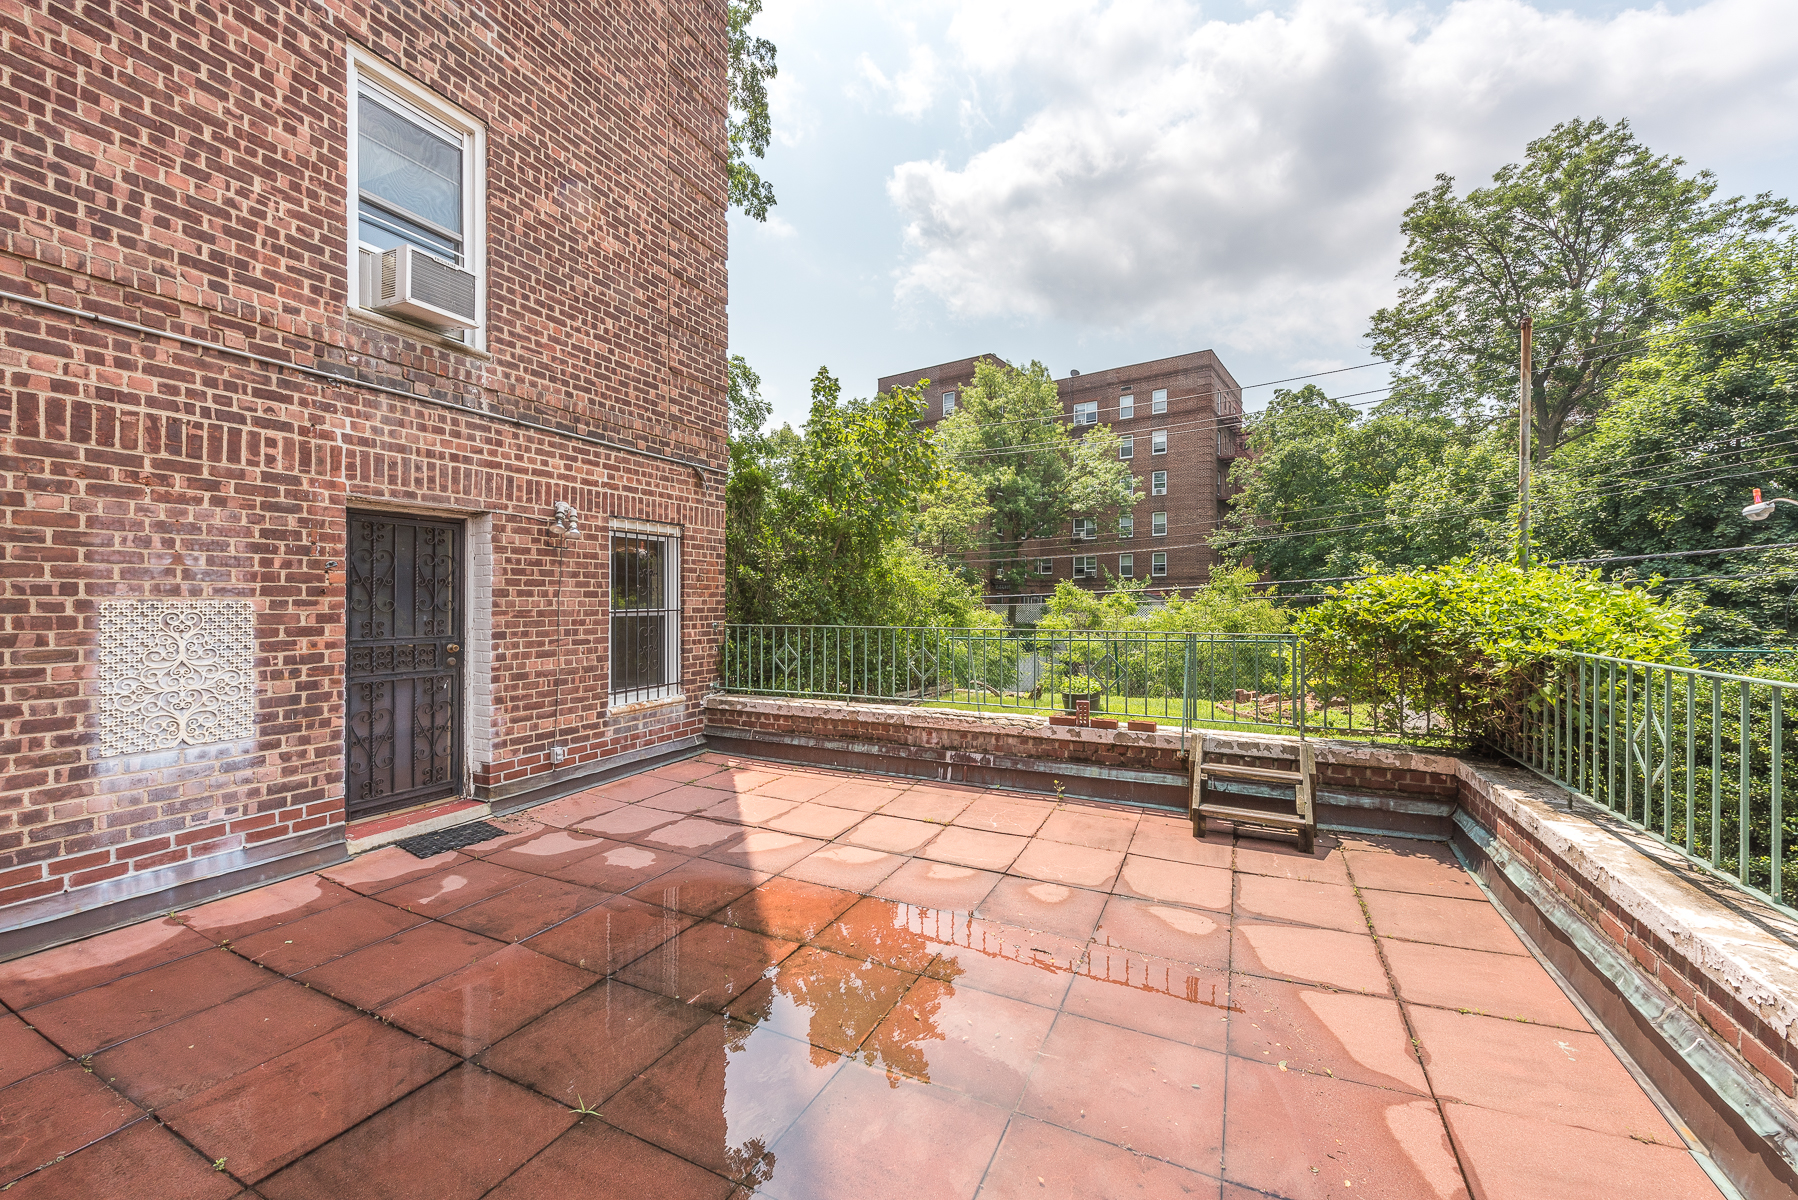 Single Family Home for Sale at Large 1 BR with Huge Terrace 5615 Netherland Avenue 1D Riverdale, New York 10471 United States